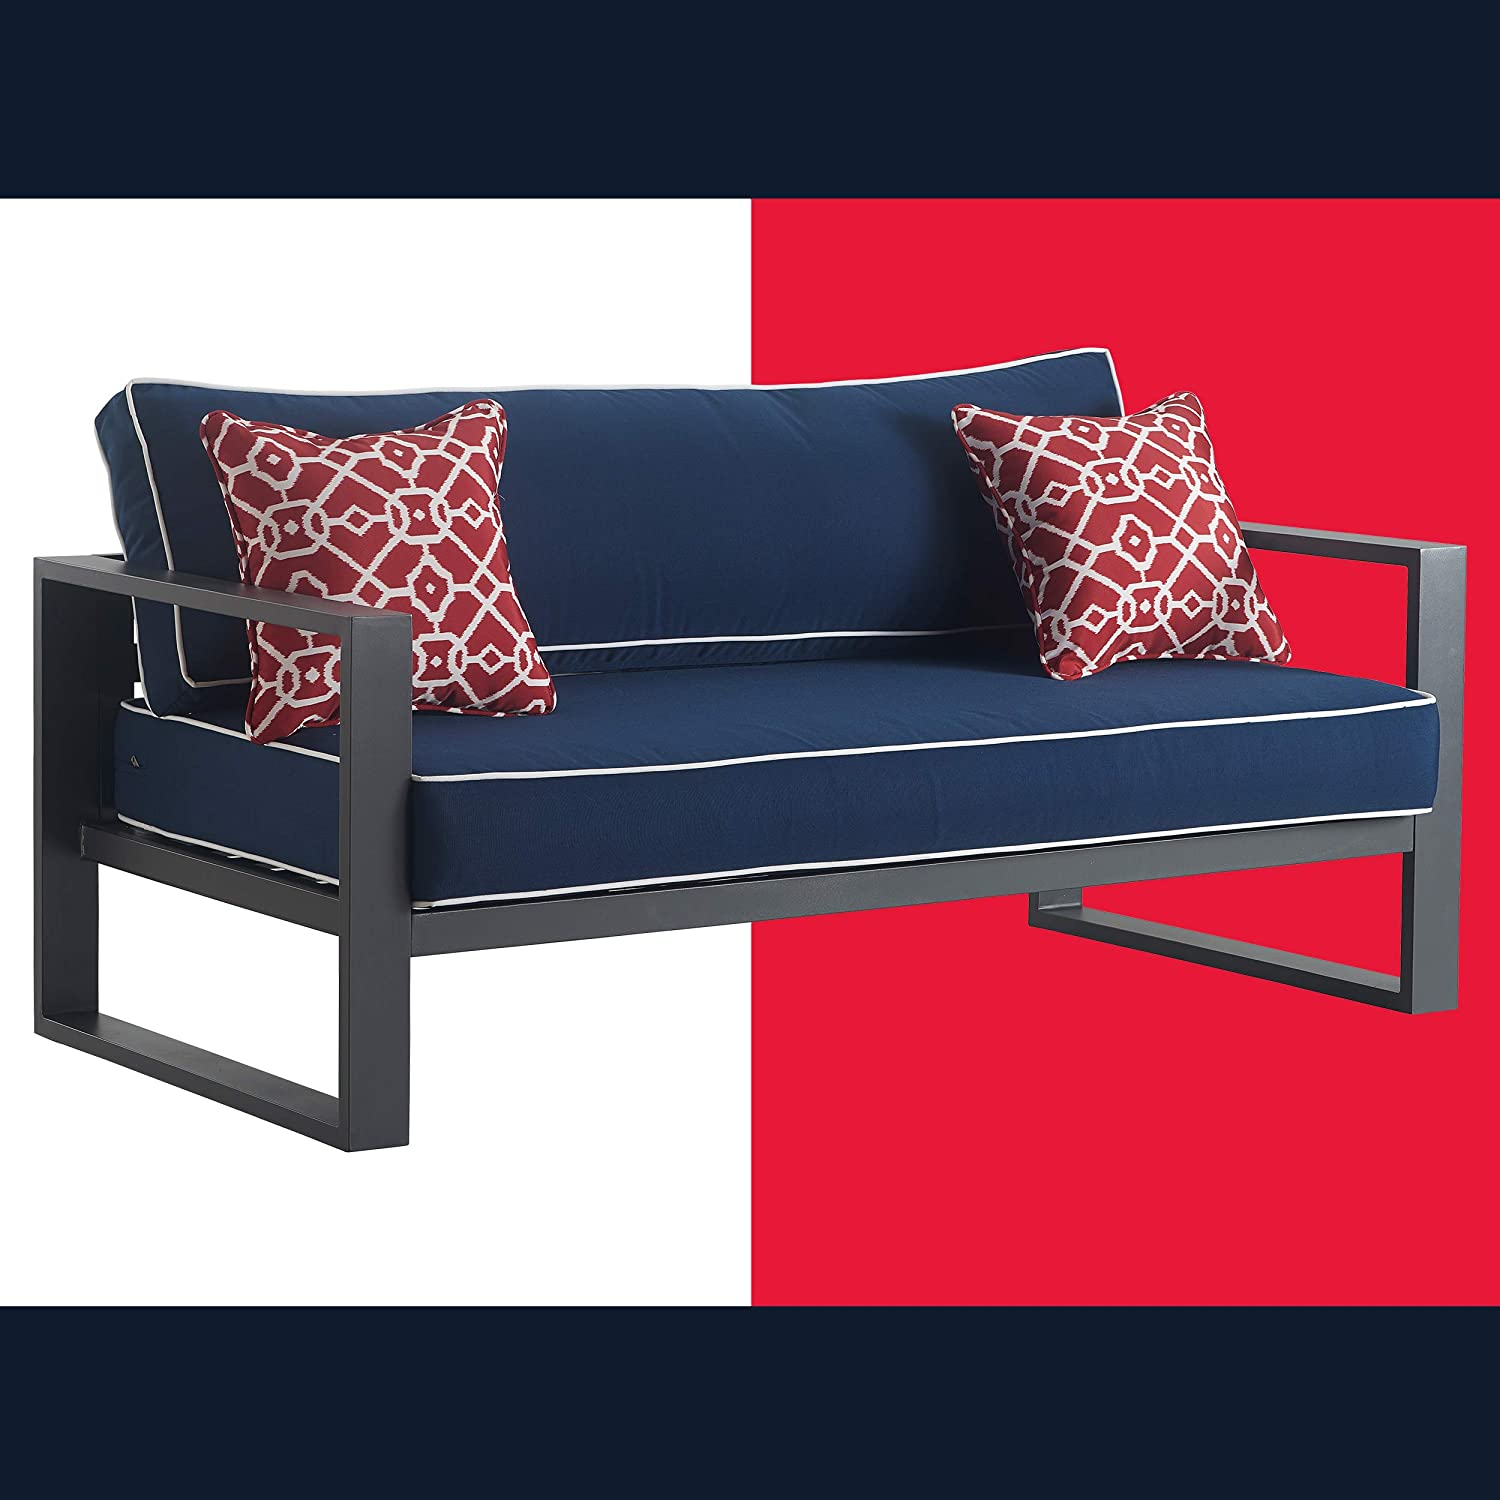 Tommy Hilfiger ODSO10010A Monterey Modern Patio Outdoor Furniture Collection, Weather Resistant, Metal Frame, Sofa, Navy Blue & Dark Gray